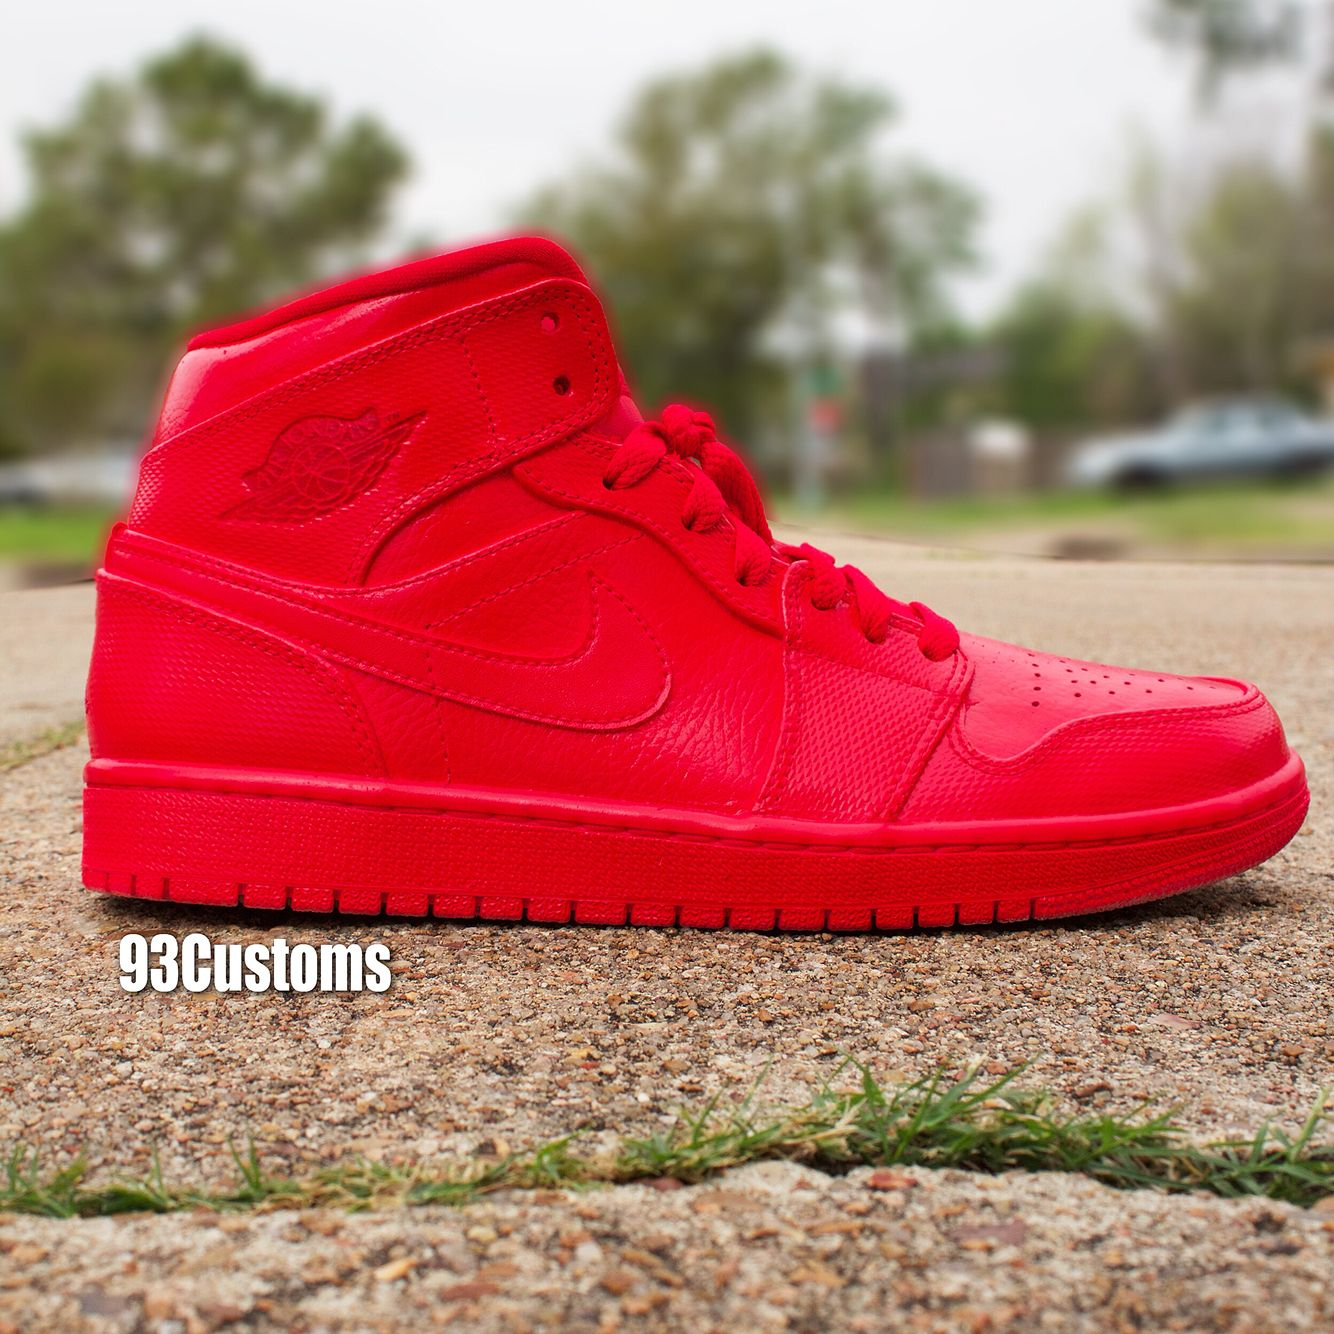 9b12333e66e0d0 Custom Red October Air Jordan 1 s! Make sure to follow on Instagram ...